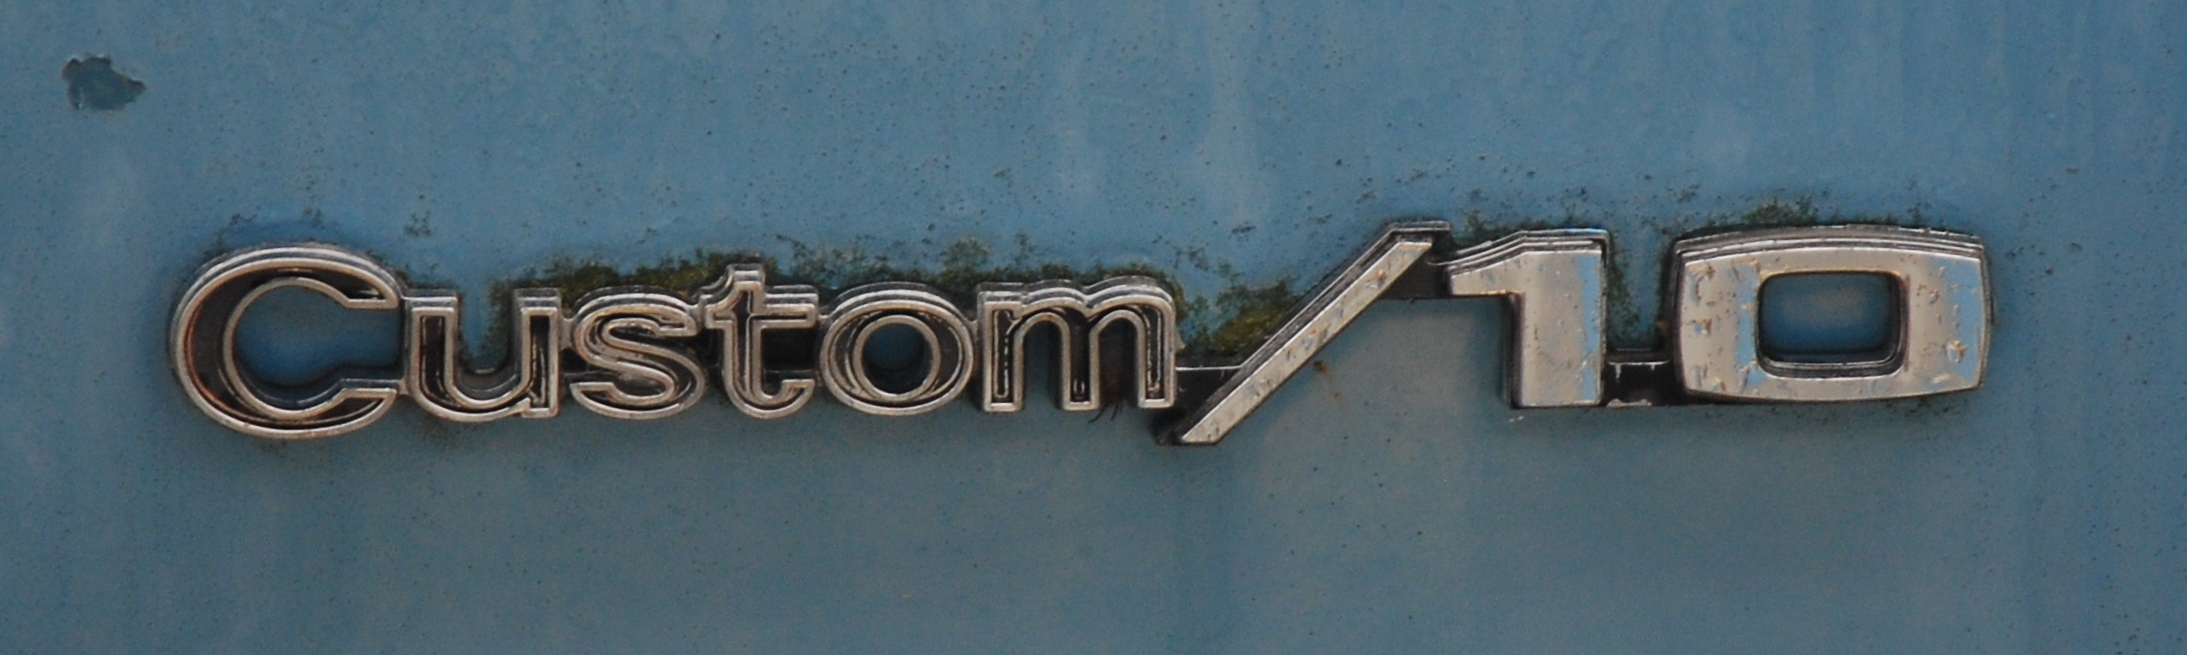 Green_Banks_-_Chevy_Suburban_C10_logo.jpg (2187×655)